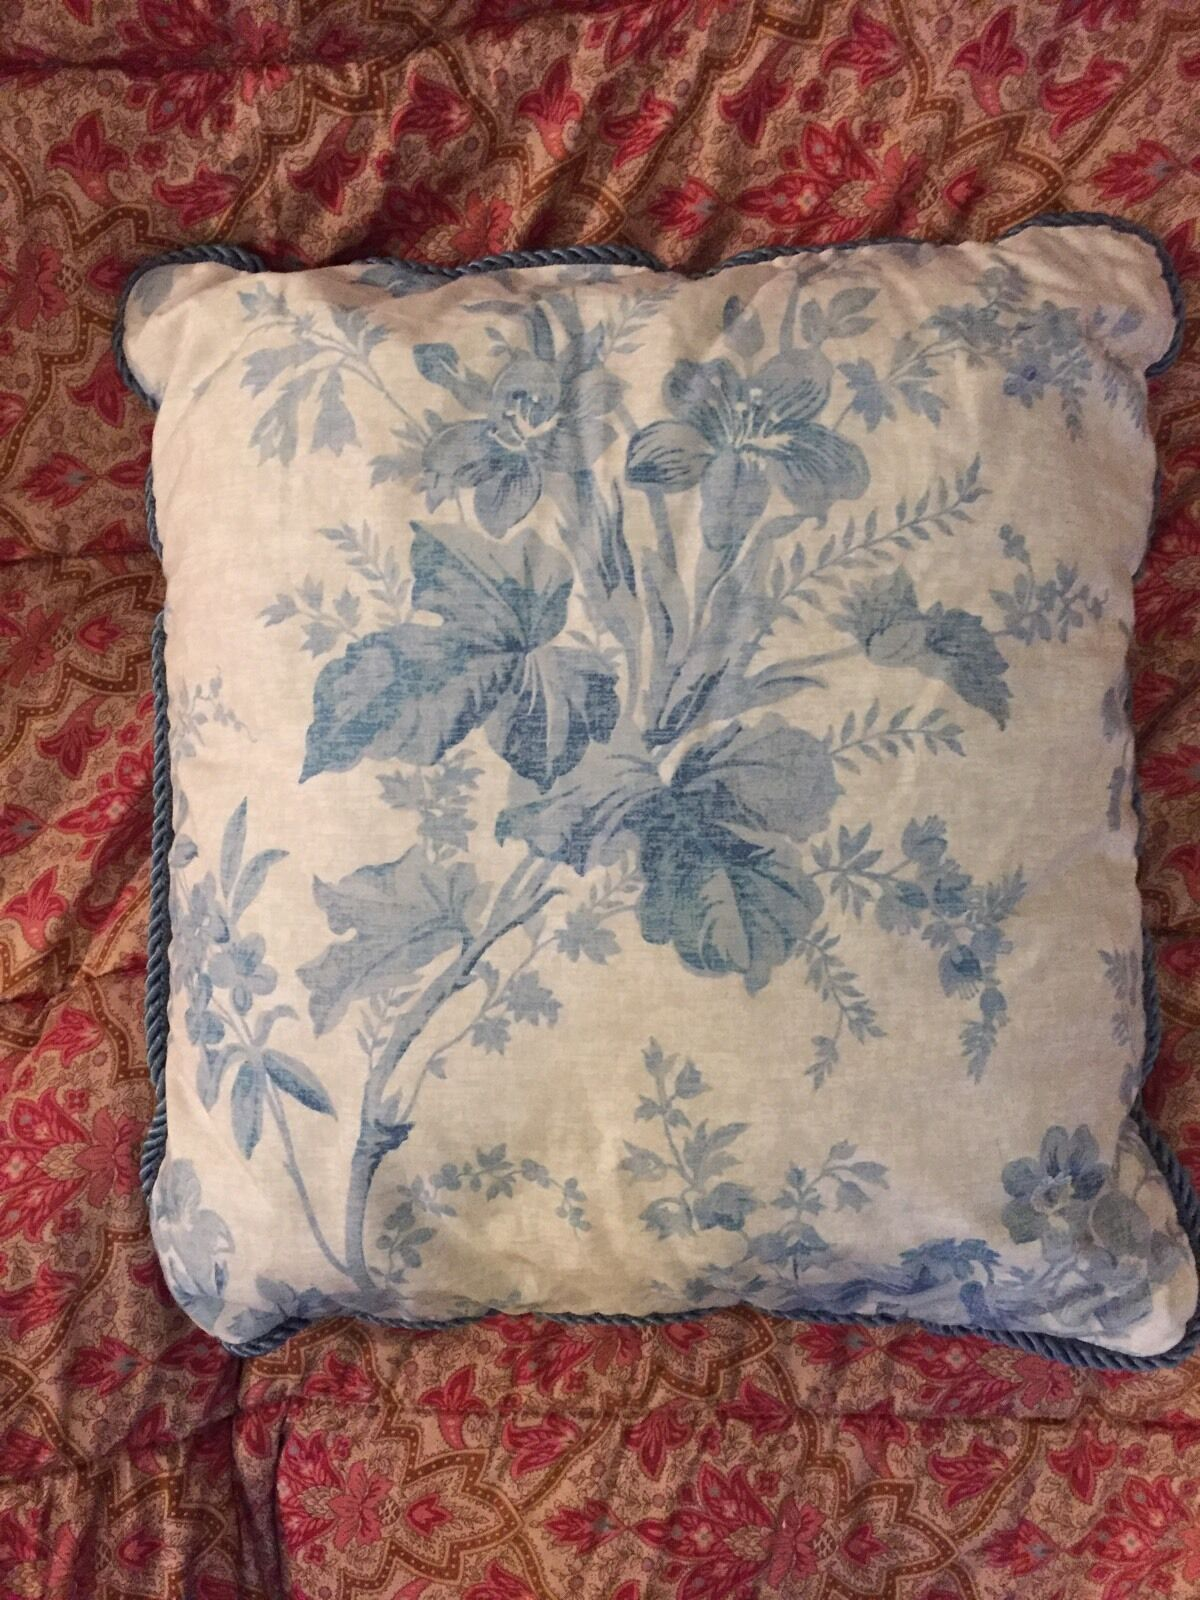 RALPH LAUREN one THROW PILLOW Coral Harbor Floral